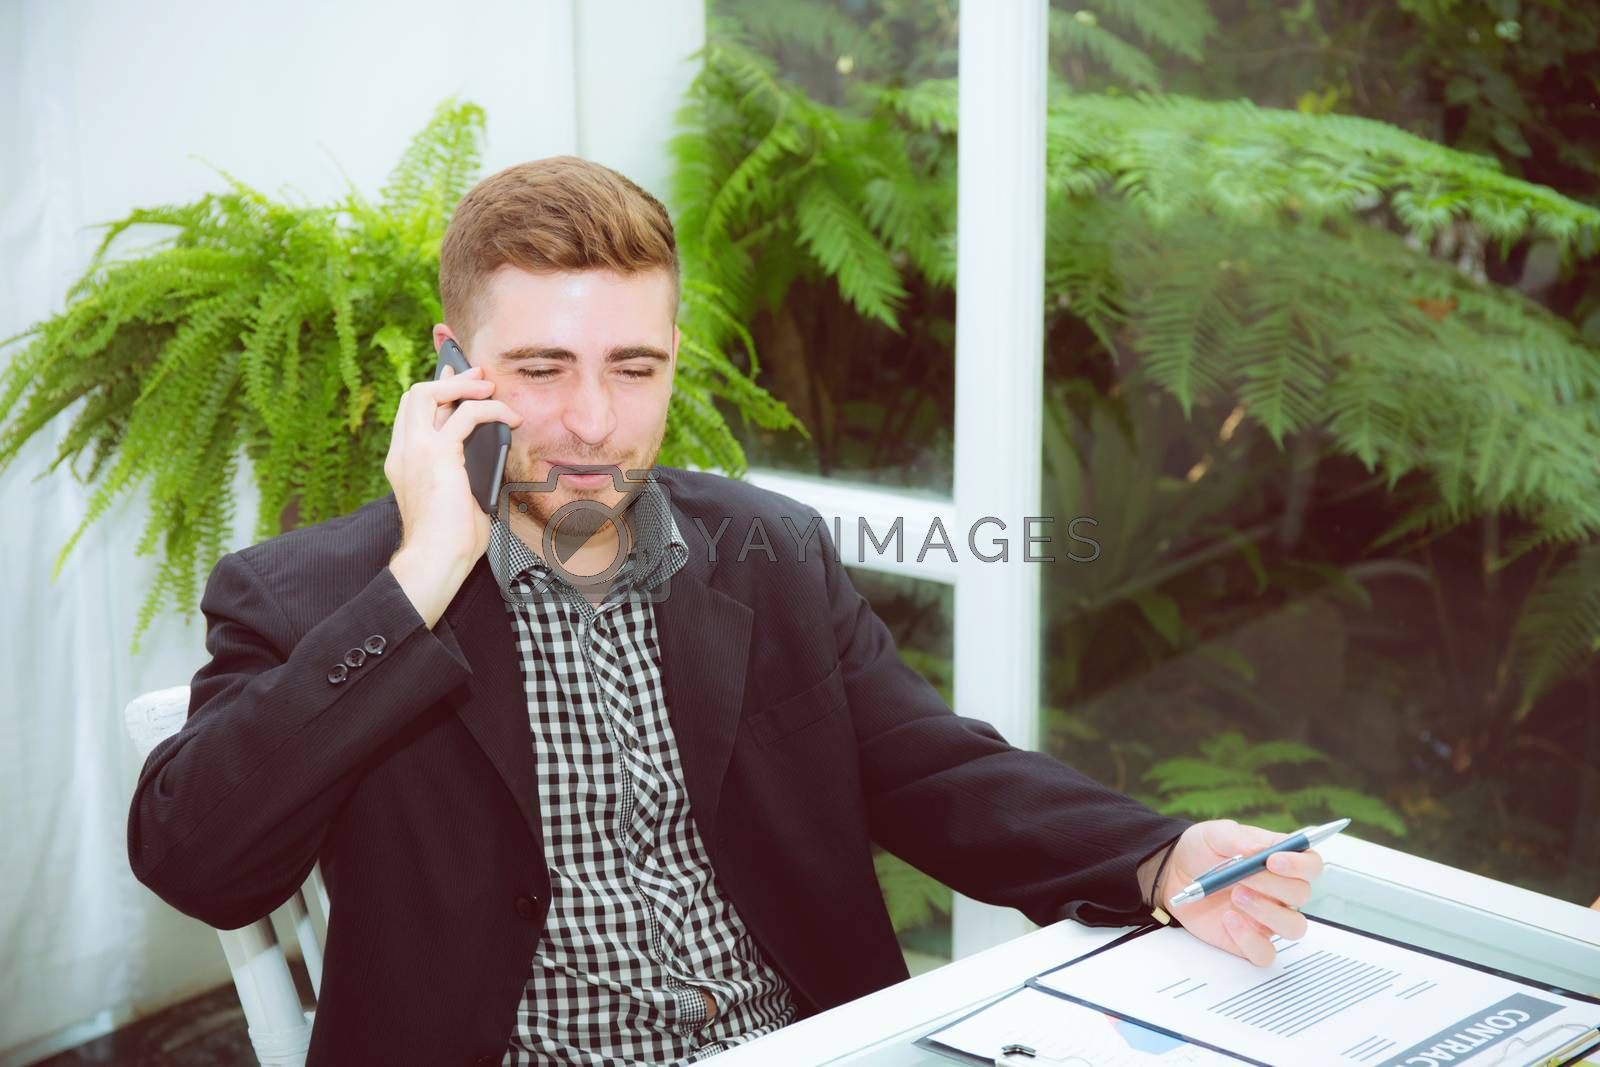 Businessman talking on smart mobile phone with document on desk with smiling, man call phone at office with professional, business and communication concept.